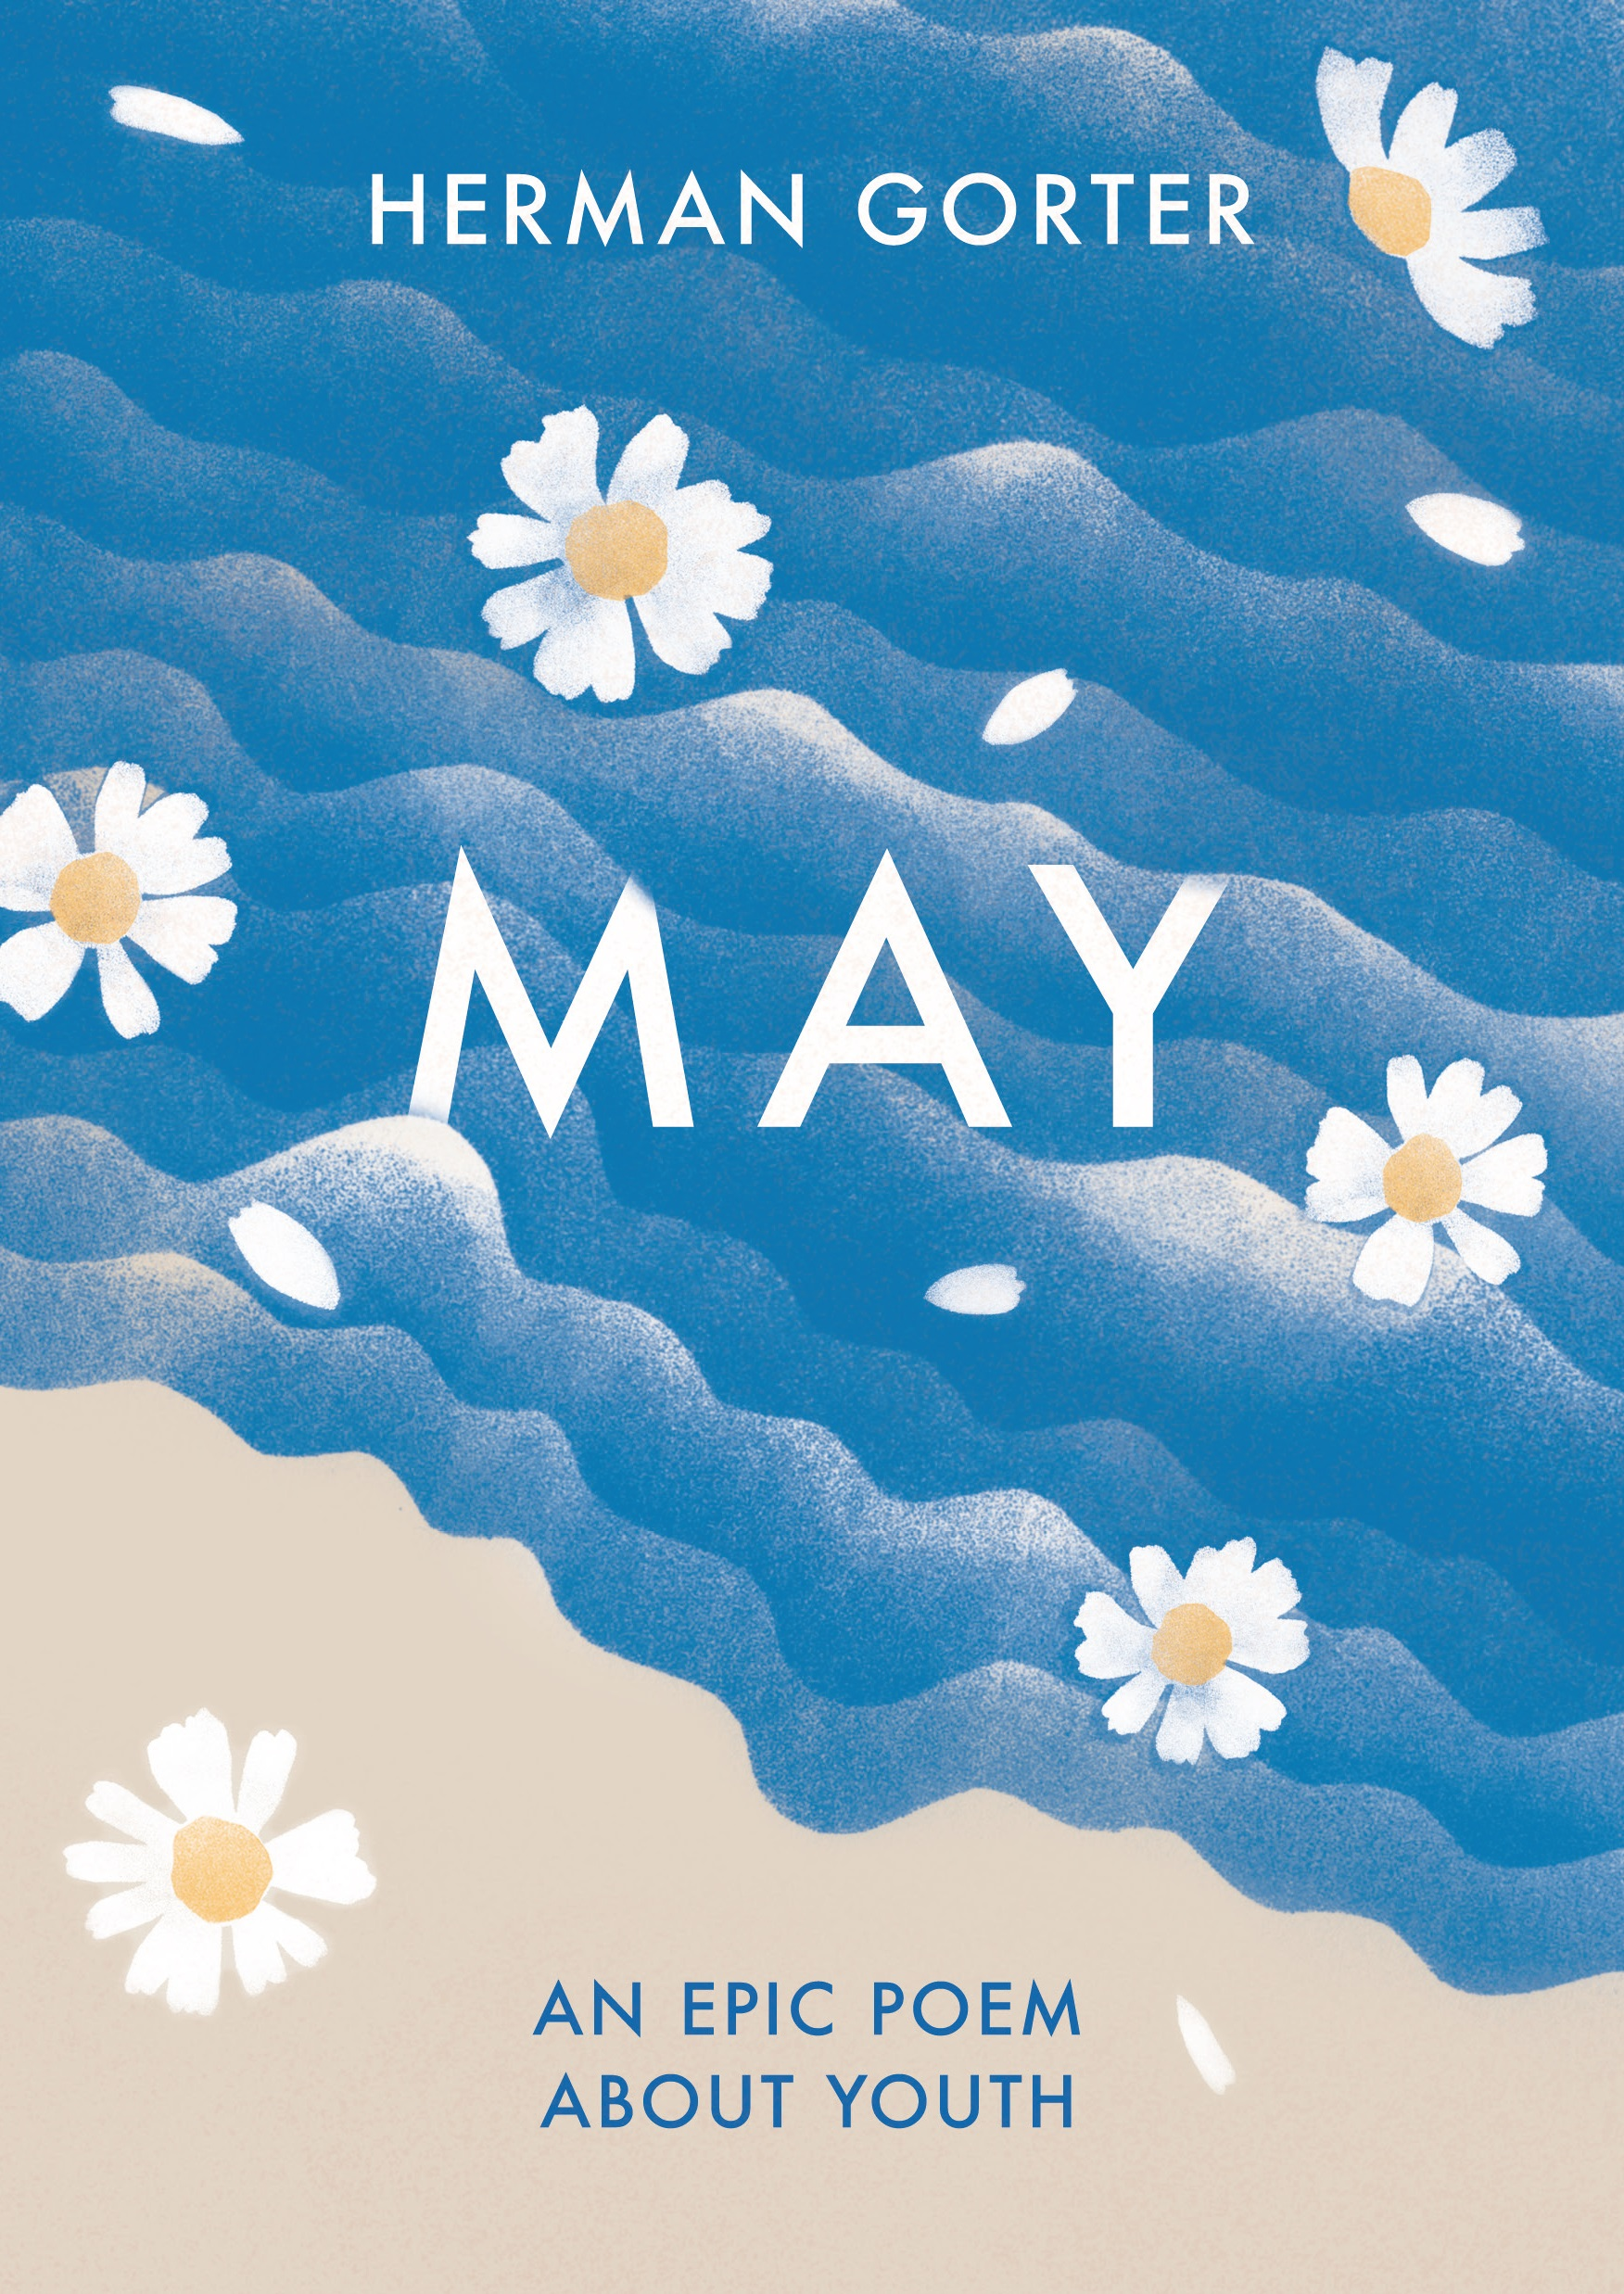 May, an epic poem about youth